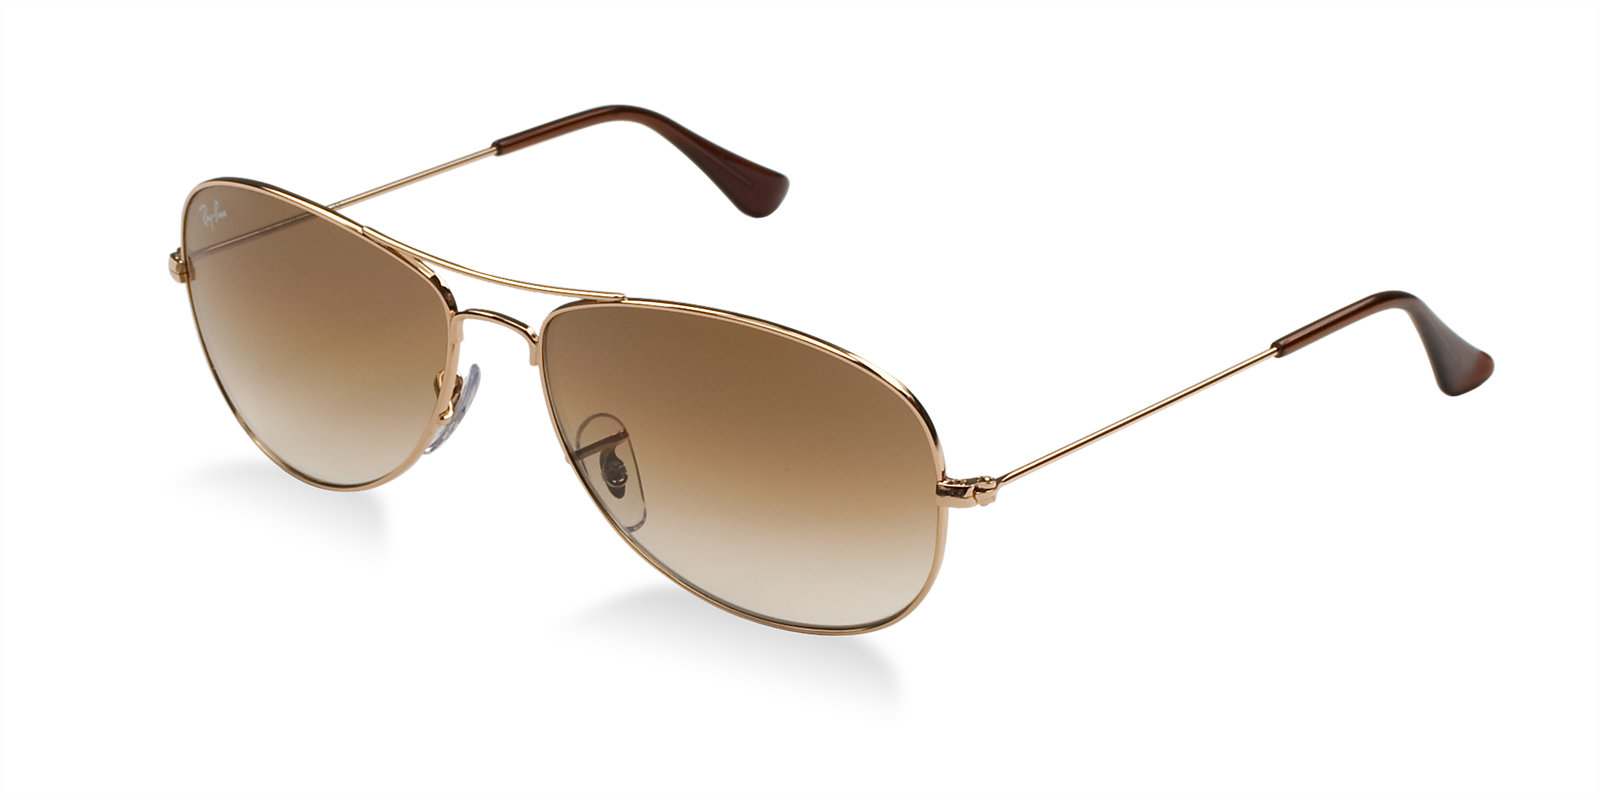 Ray-Ban-Sunglasses-for-Men (7)